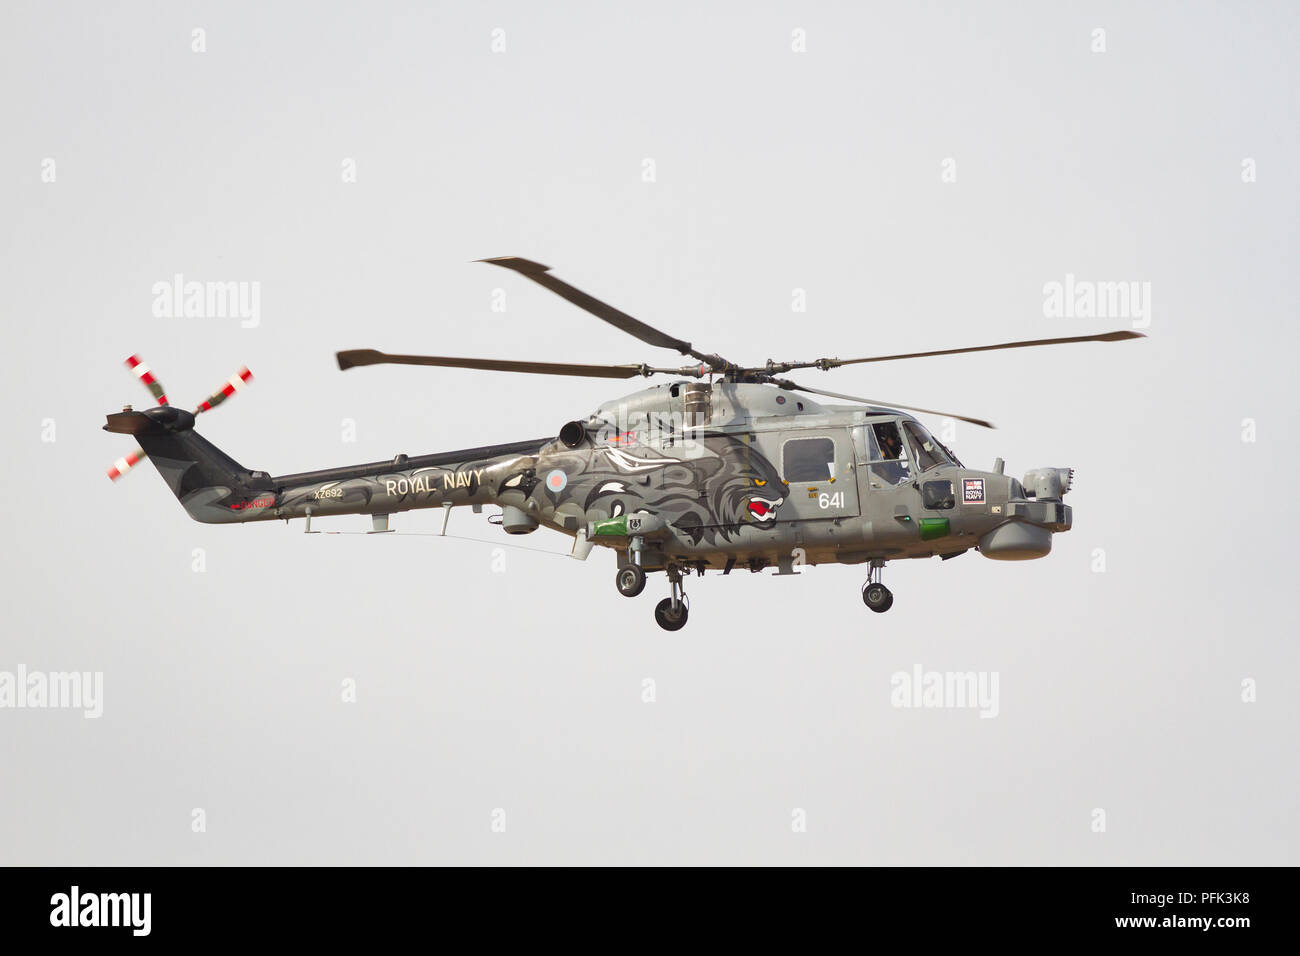 Royal Navy Westland Lynx Helicopter at Southport Air Show - Stock Image